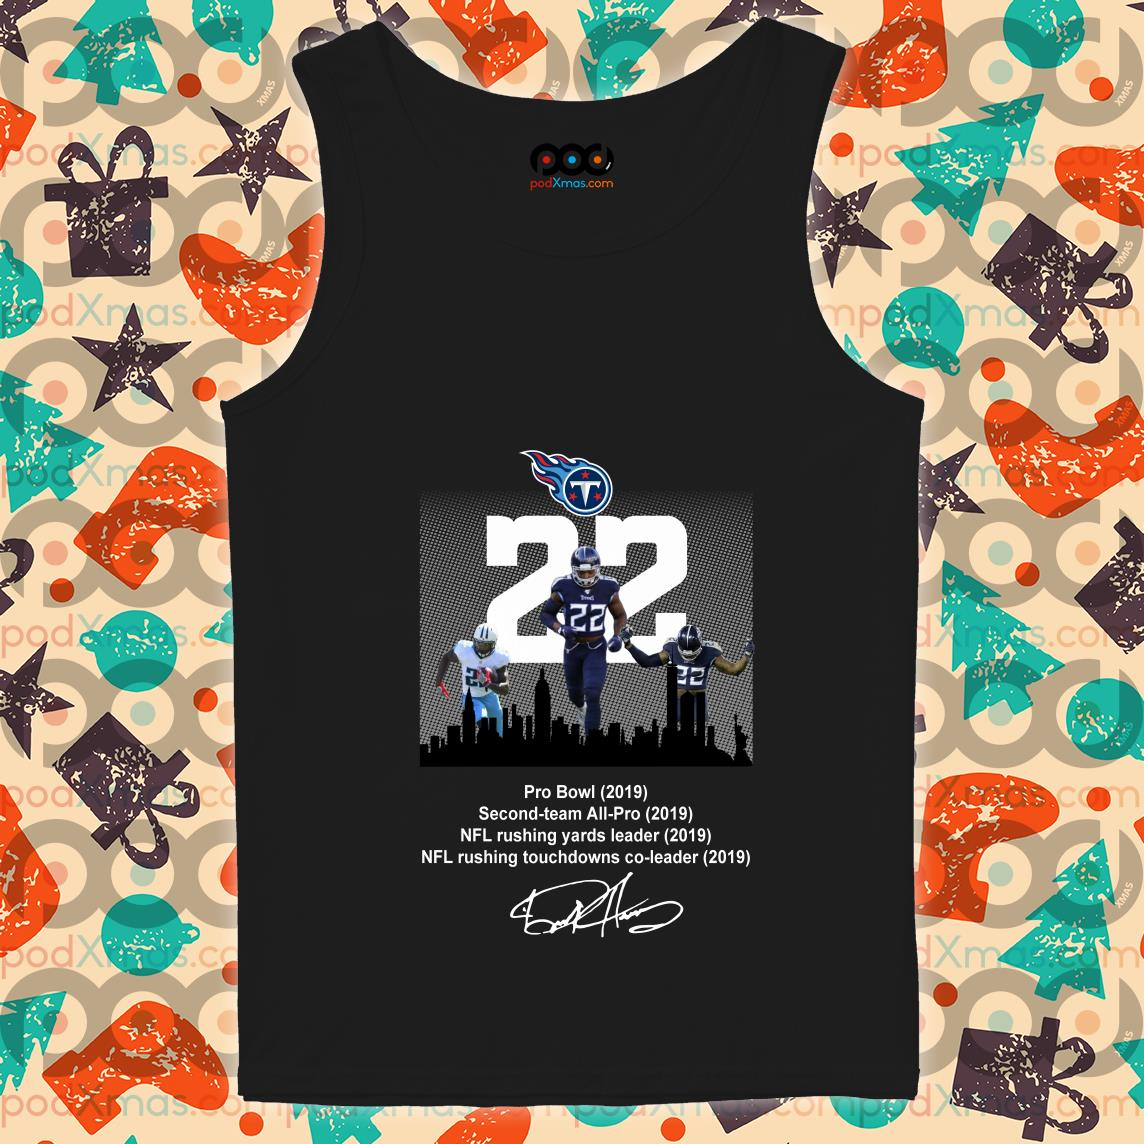 Tennessee Titans Derrick Henry Pro Bowl 2019 Second-Team All Pro NFL Rushing Yards leader 2019 signature tank top